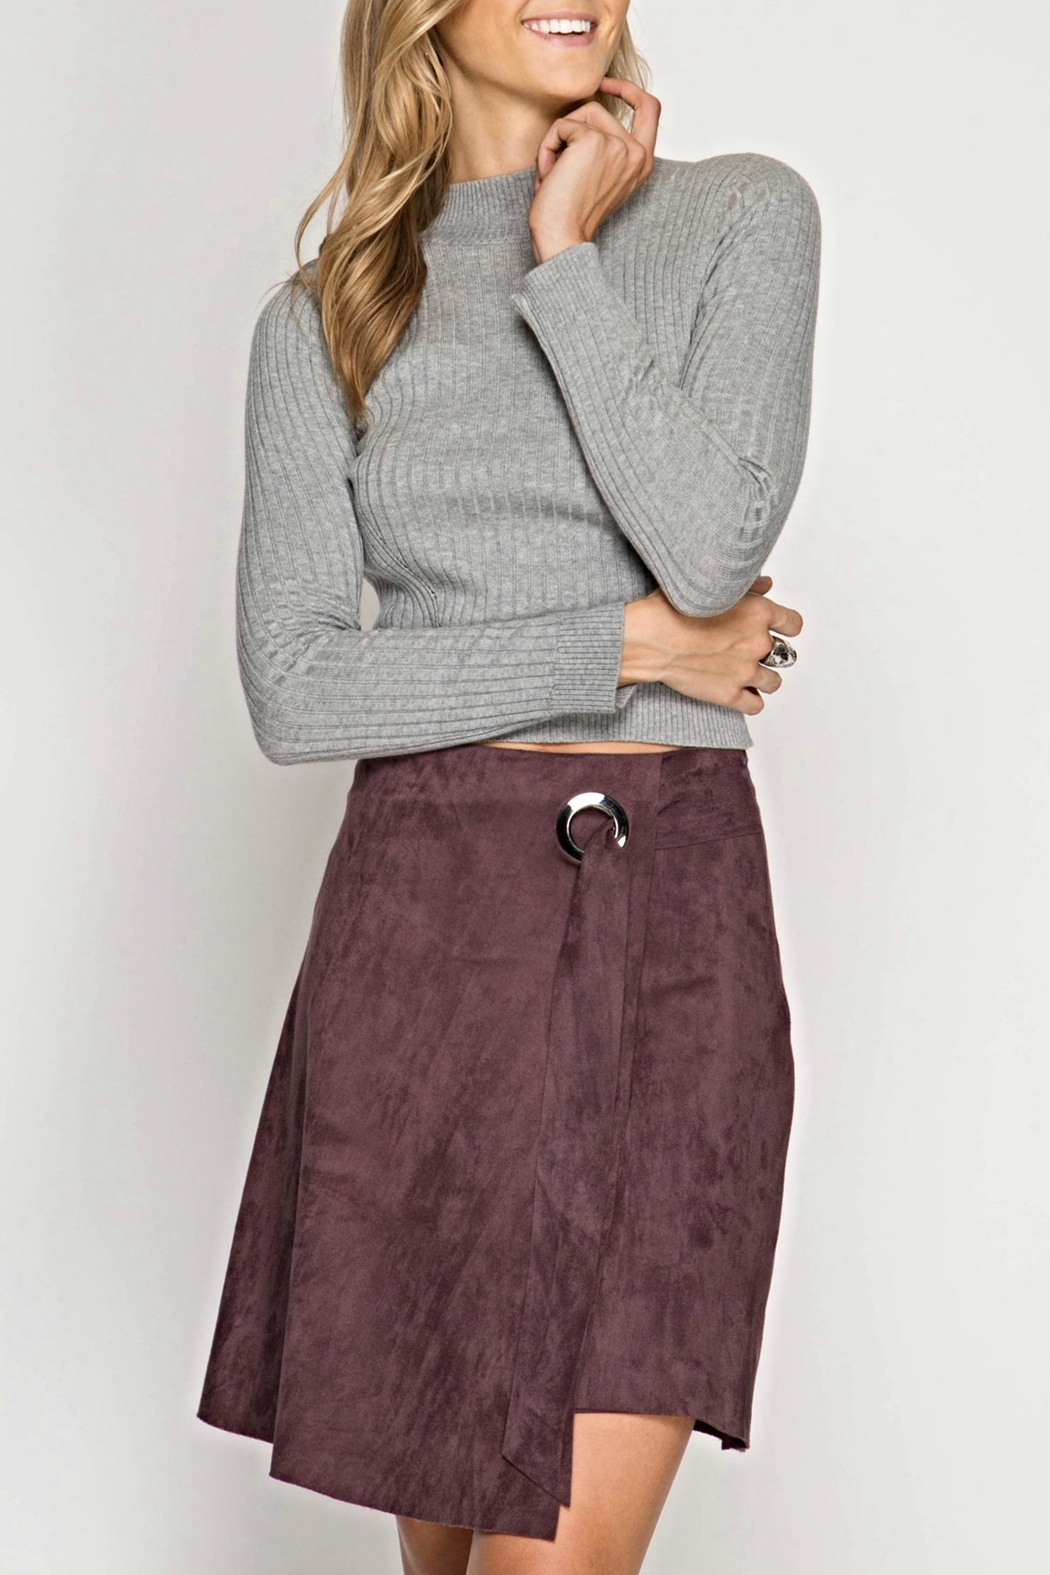 She + Sky Crooked Suede Skirt - Front Cropped Image